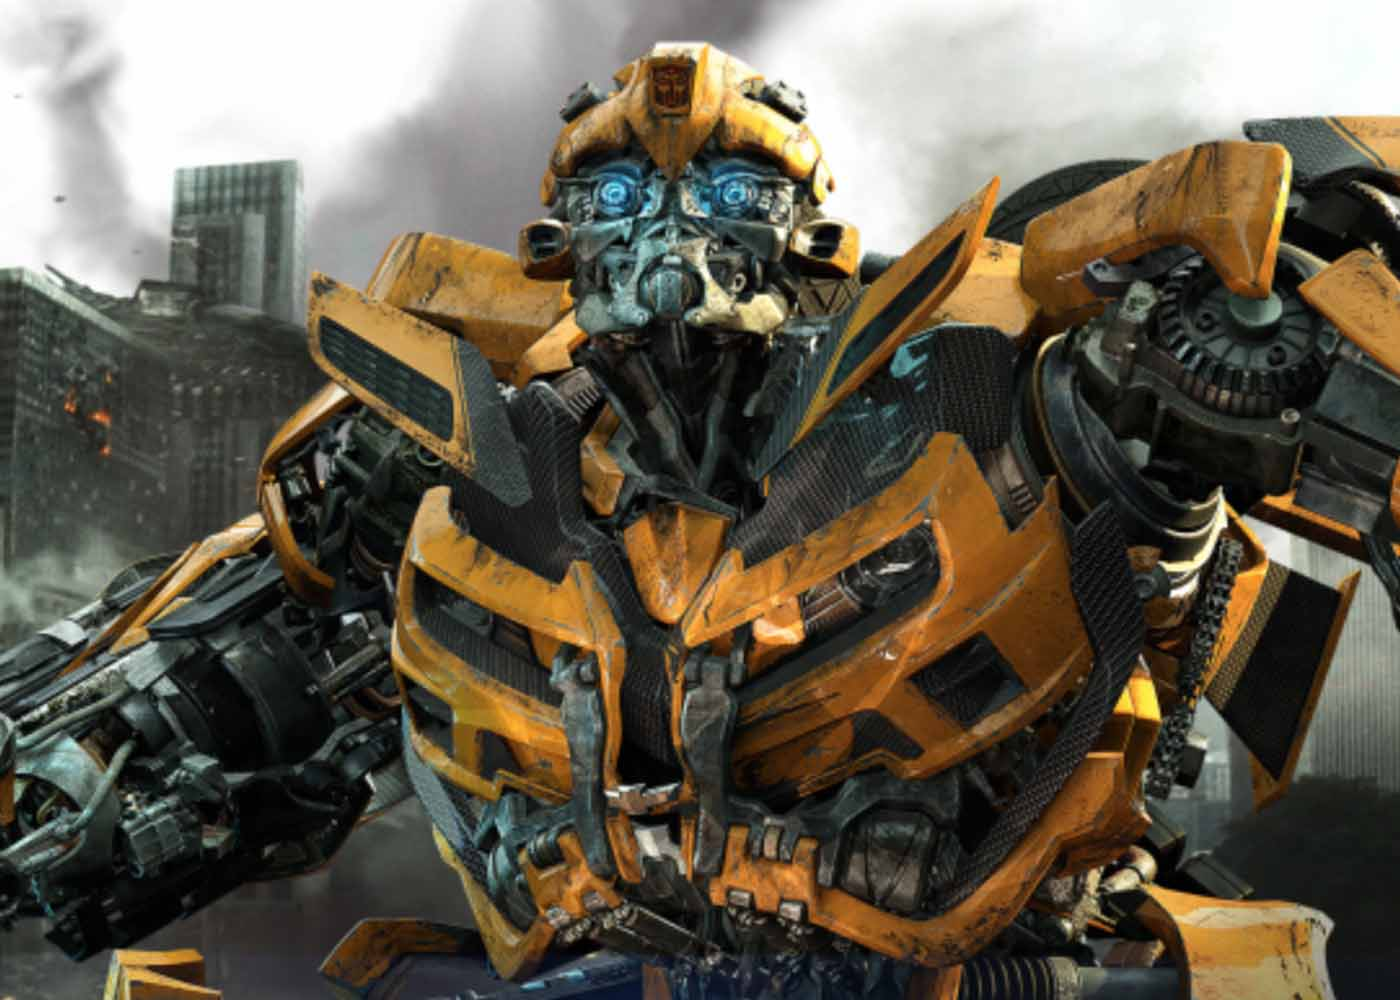 Take A First Look At 'Transformers' Prequel Bumblebee!